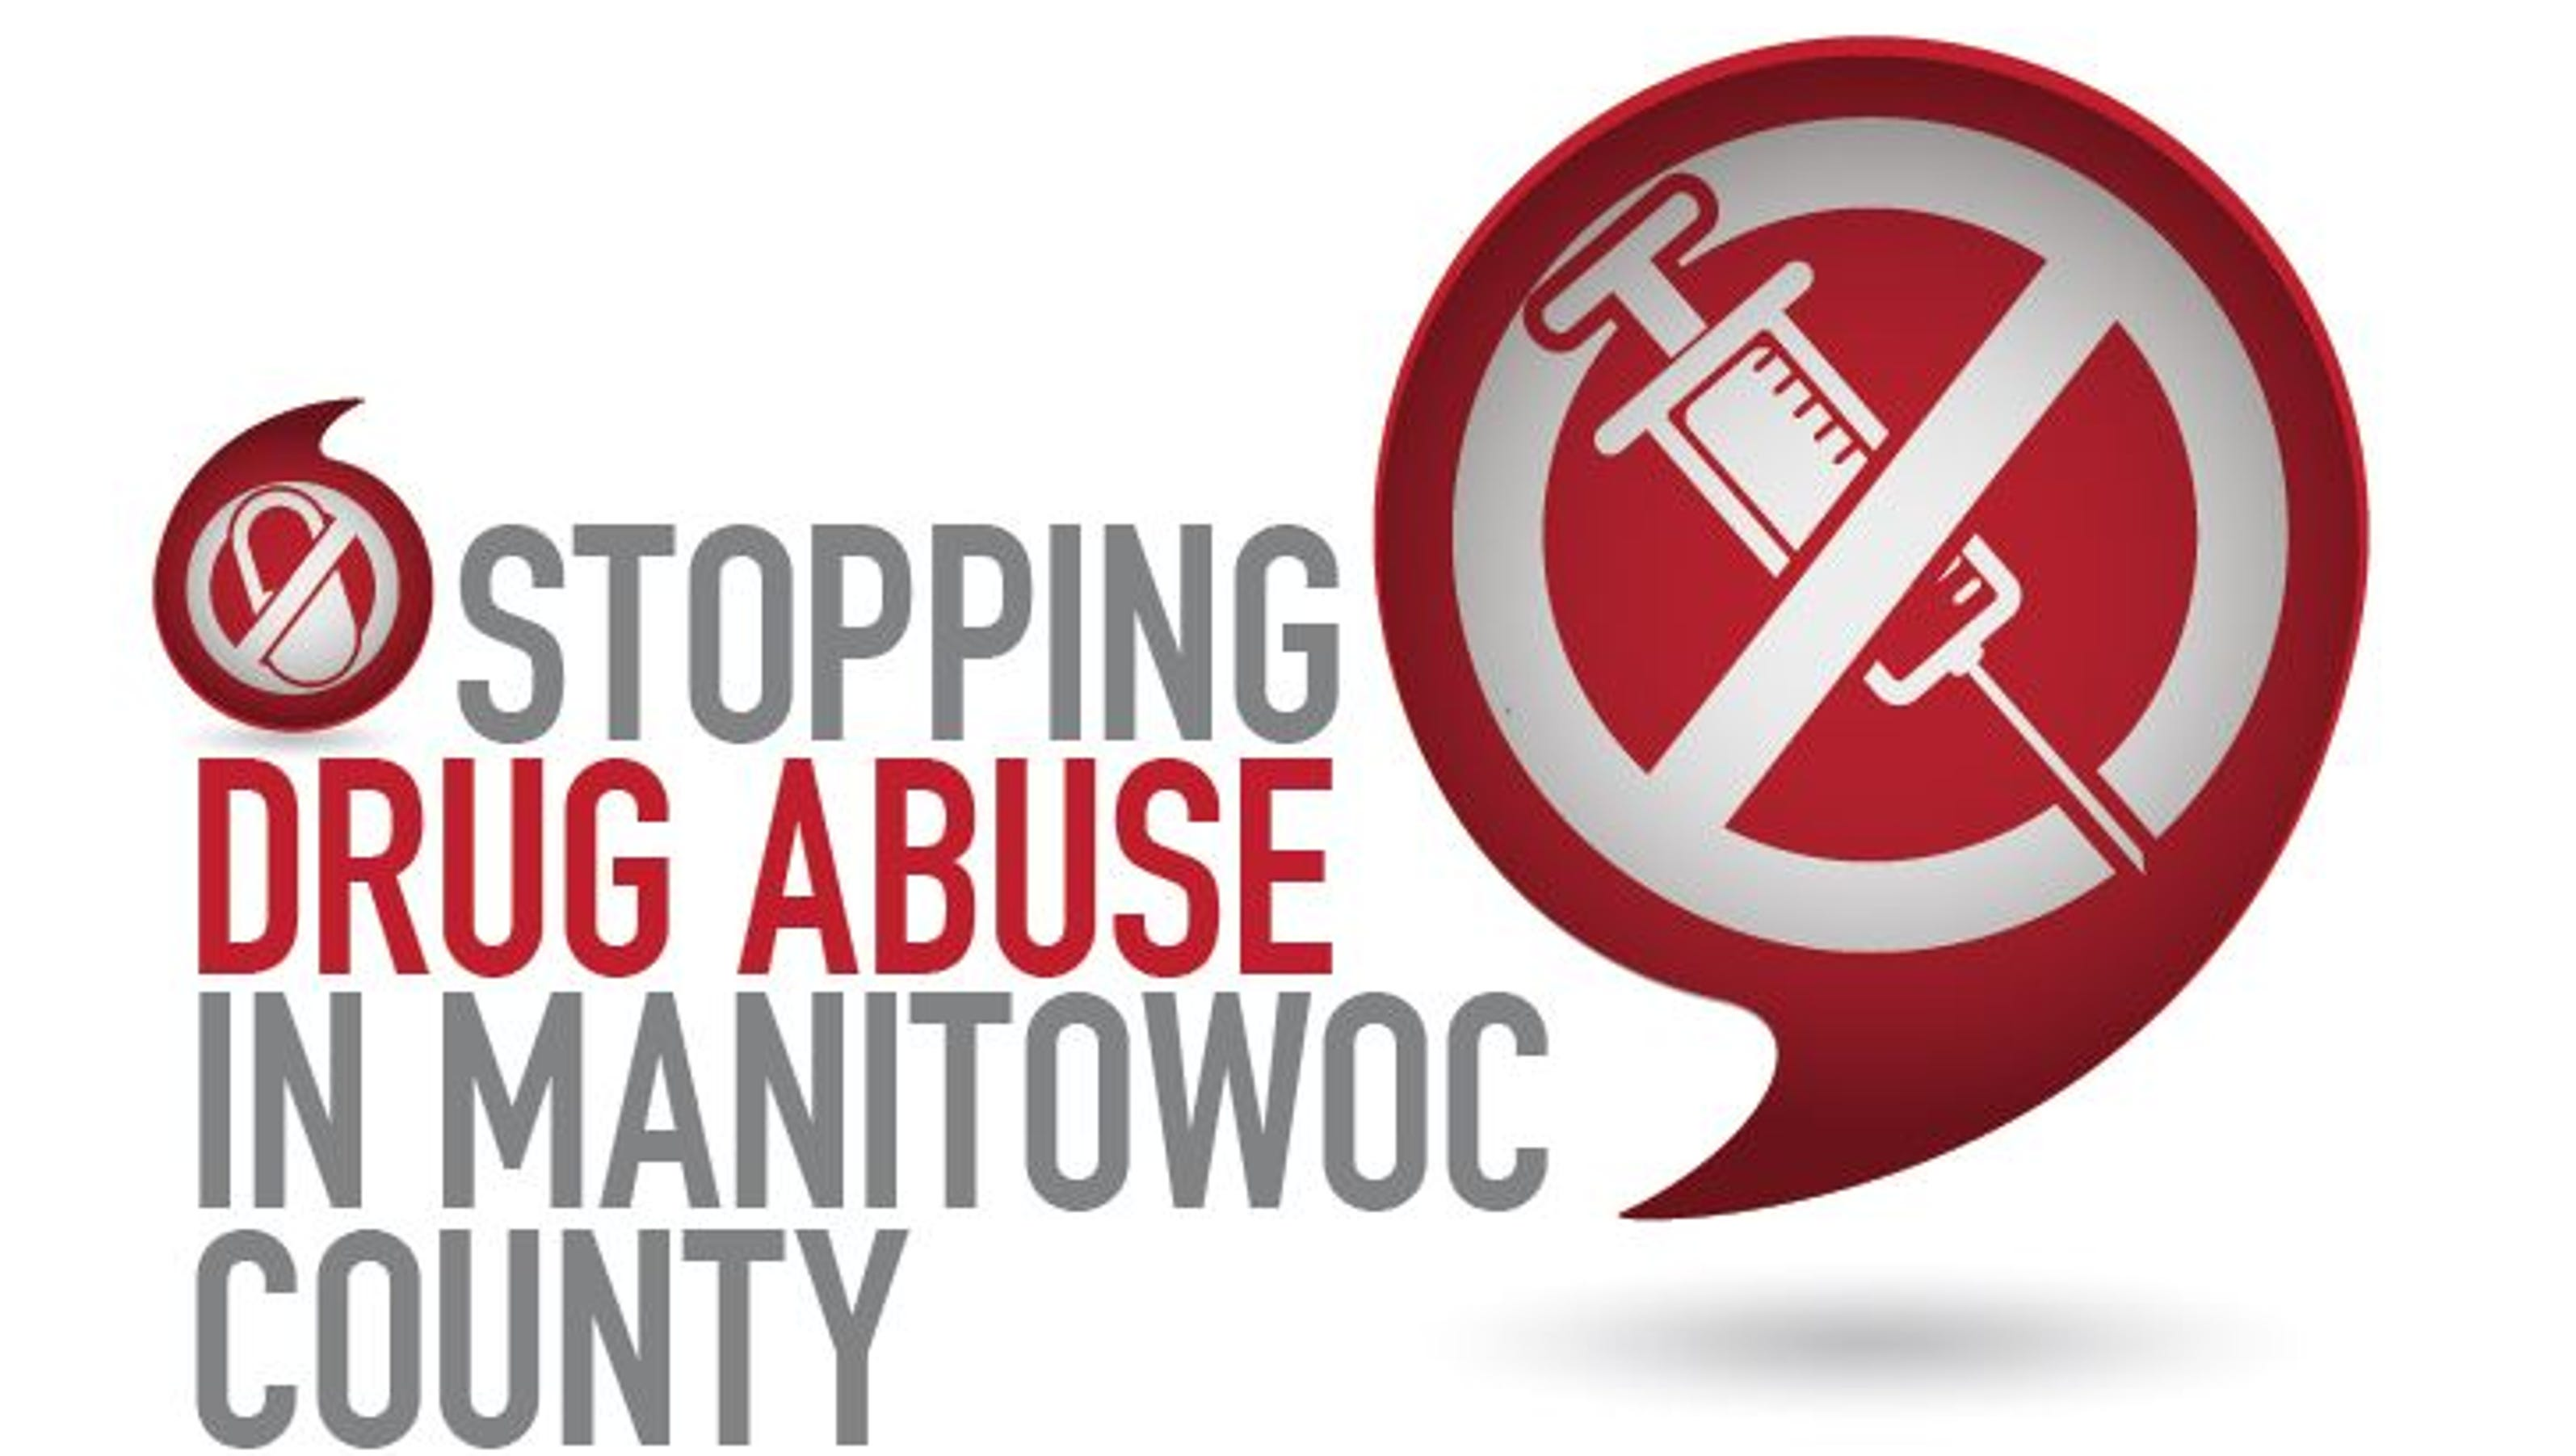 the solutions for substance abuse anong Substance abuse among the elderly a growing substance abuse is more prevalent among persons who suffer a number of losses illinois, new york, florida, massachusetts, colorado and texas, the foundation offers prevention and recovery solutions nationwide and across the entire.